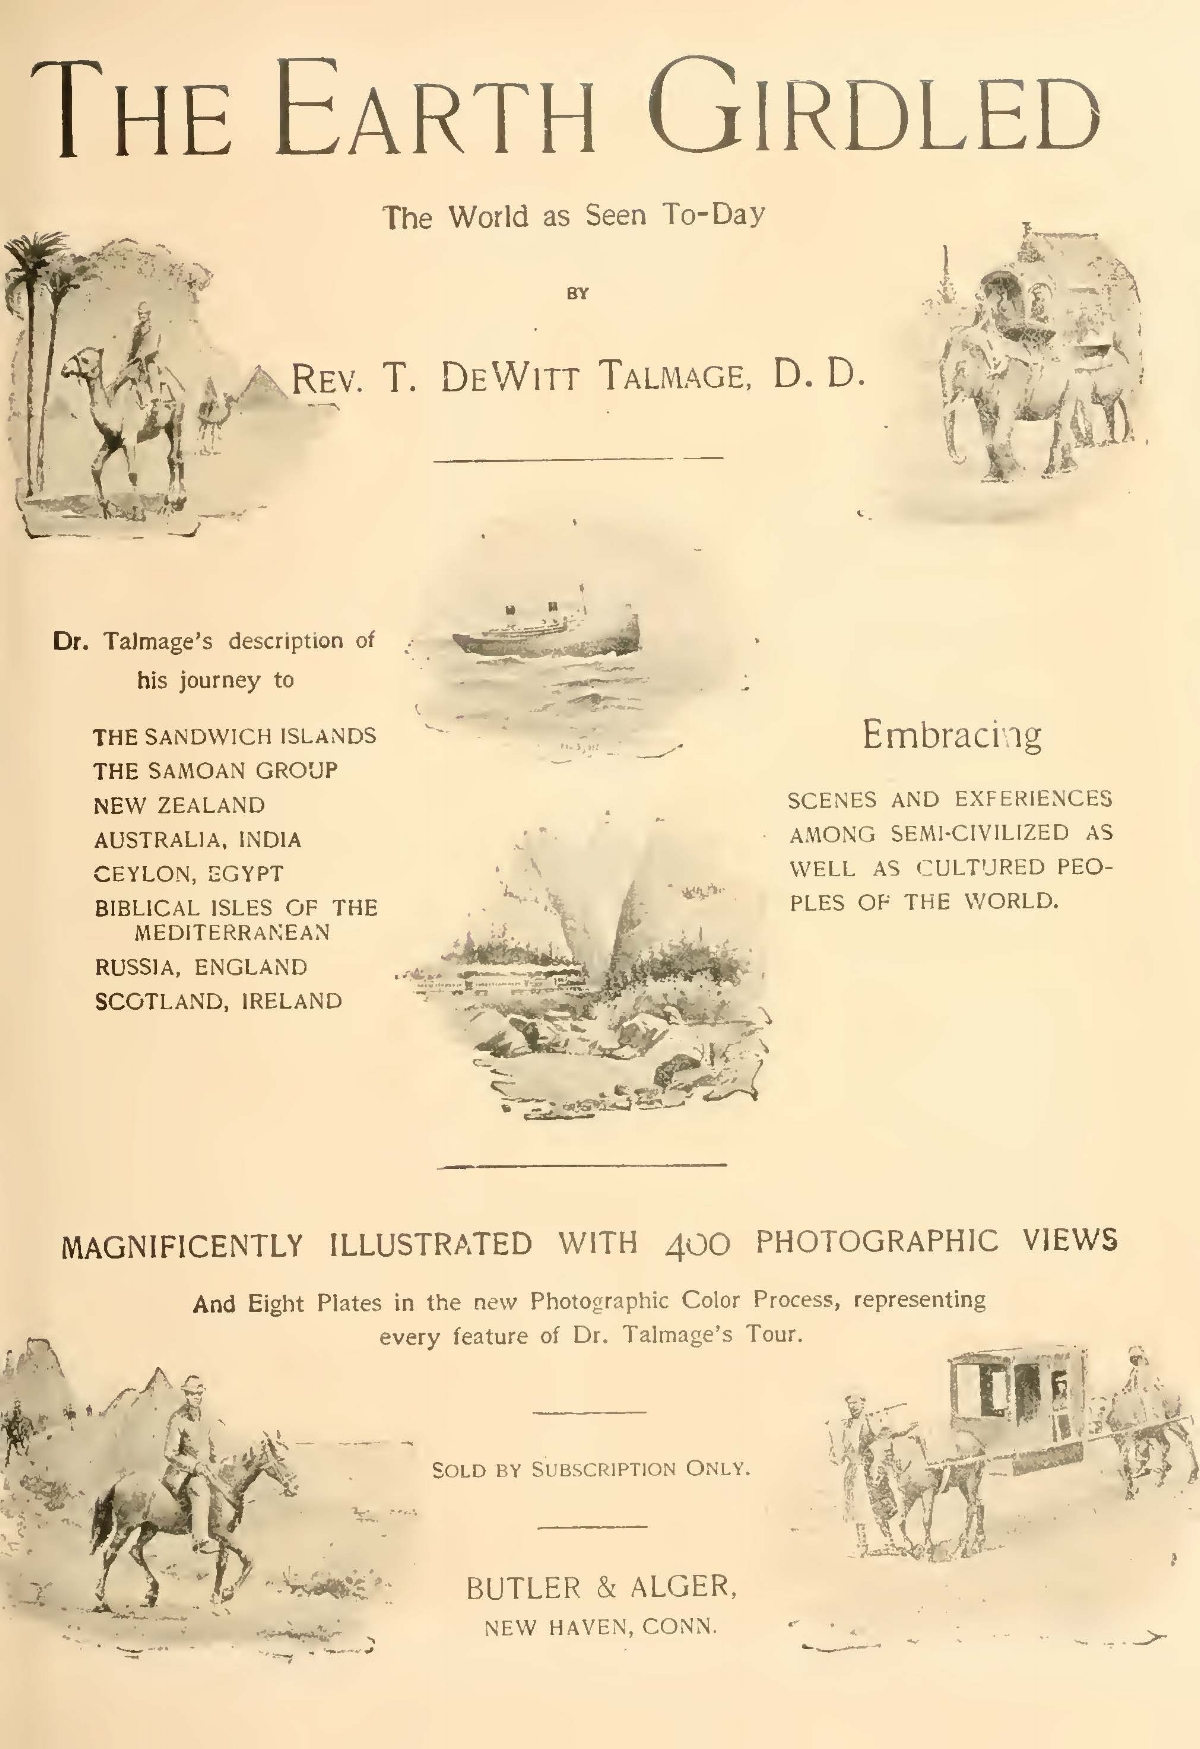 Talmage, Thomas De Witt, The Earth Girdled The World as Seen To-Day Title Page.jpg